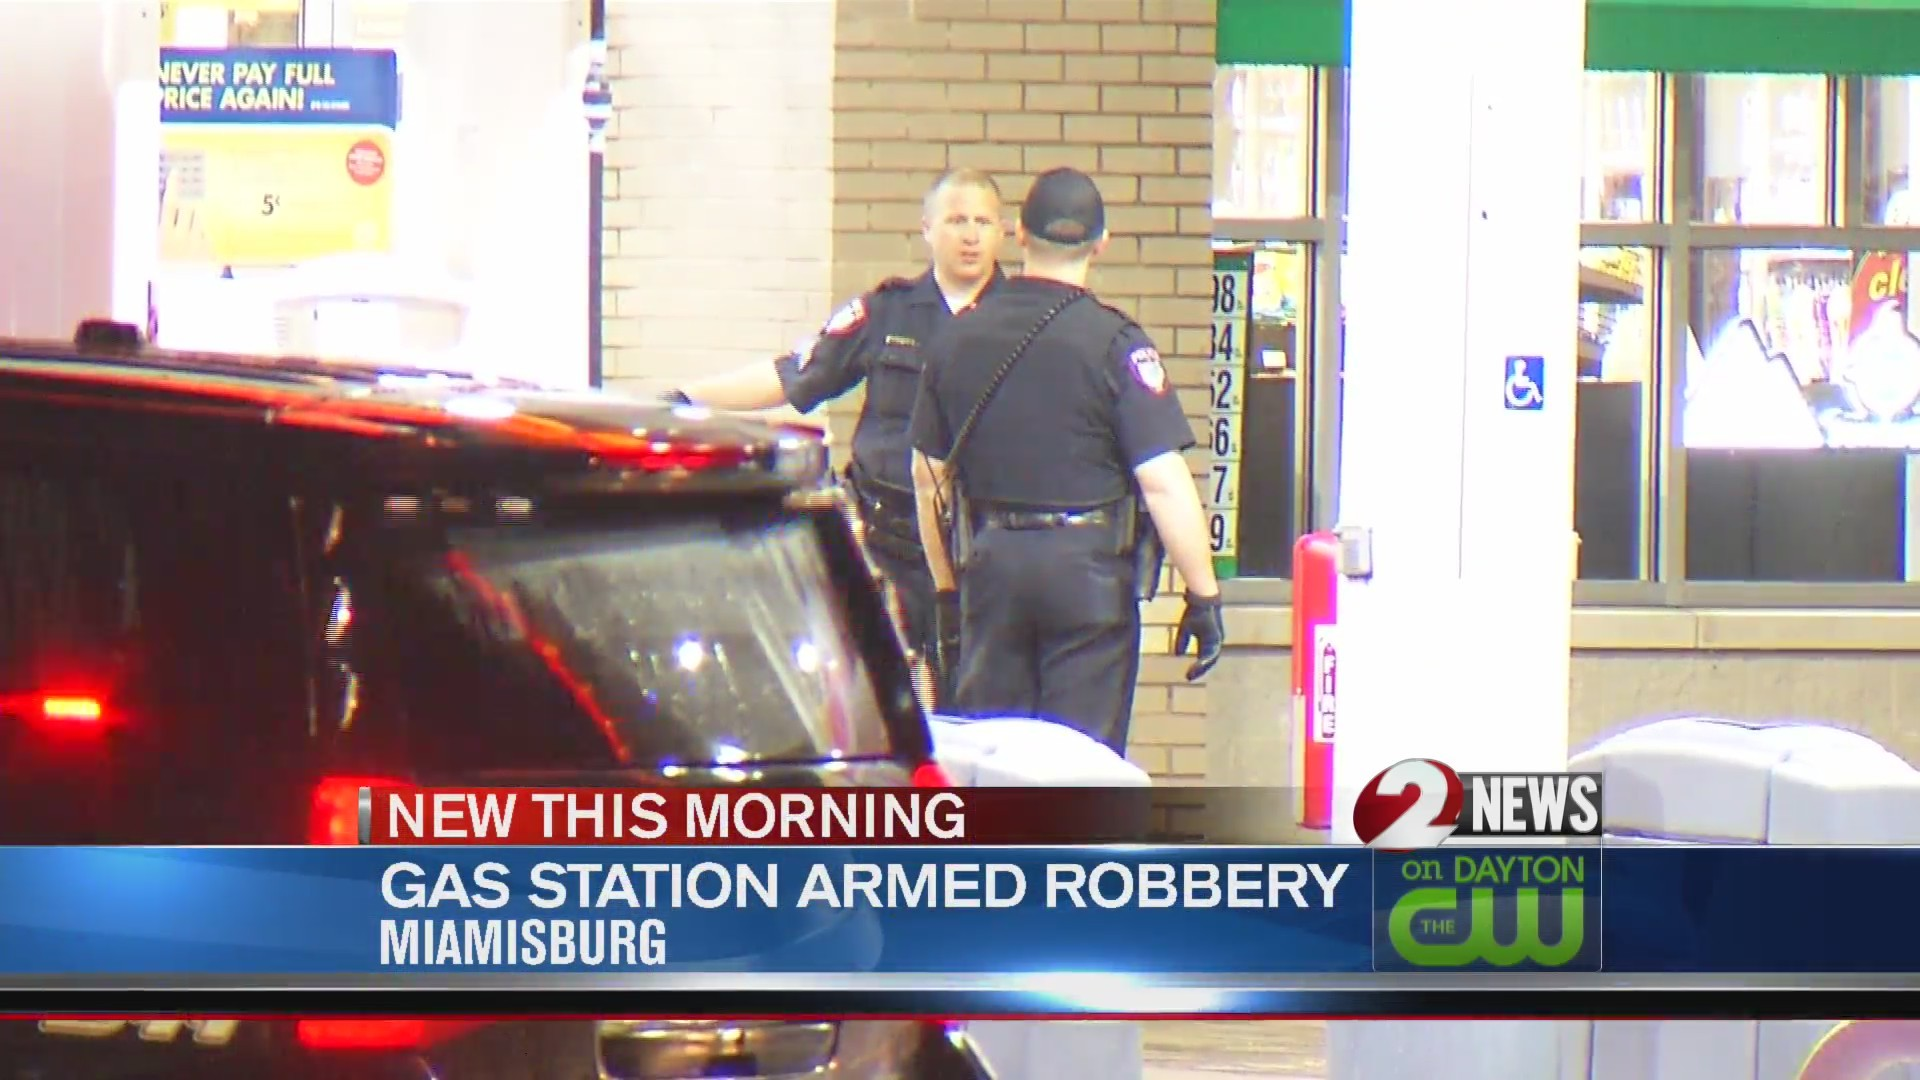 Police search for 3 in Miamisburg gas station armed robbery